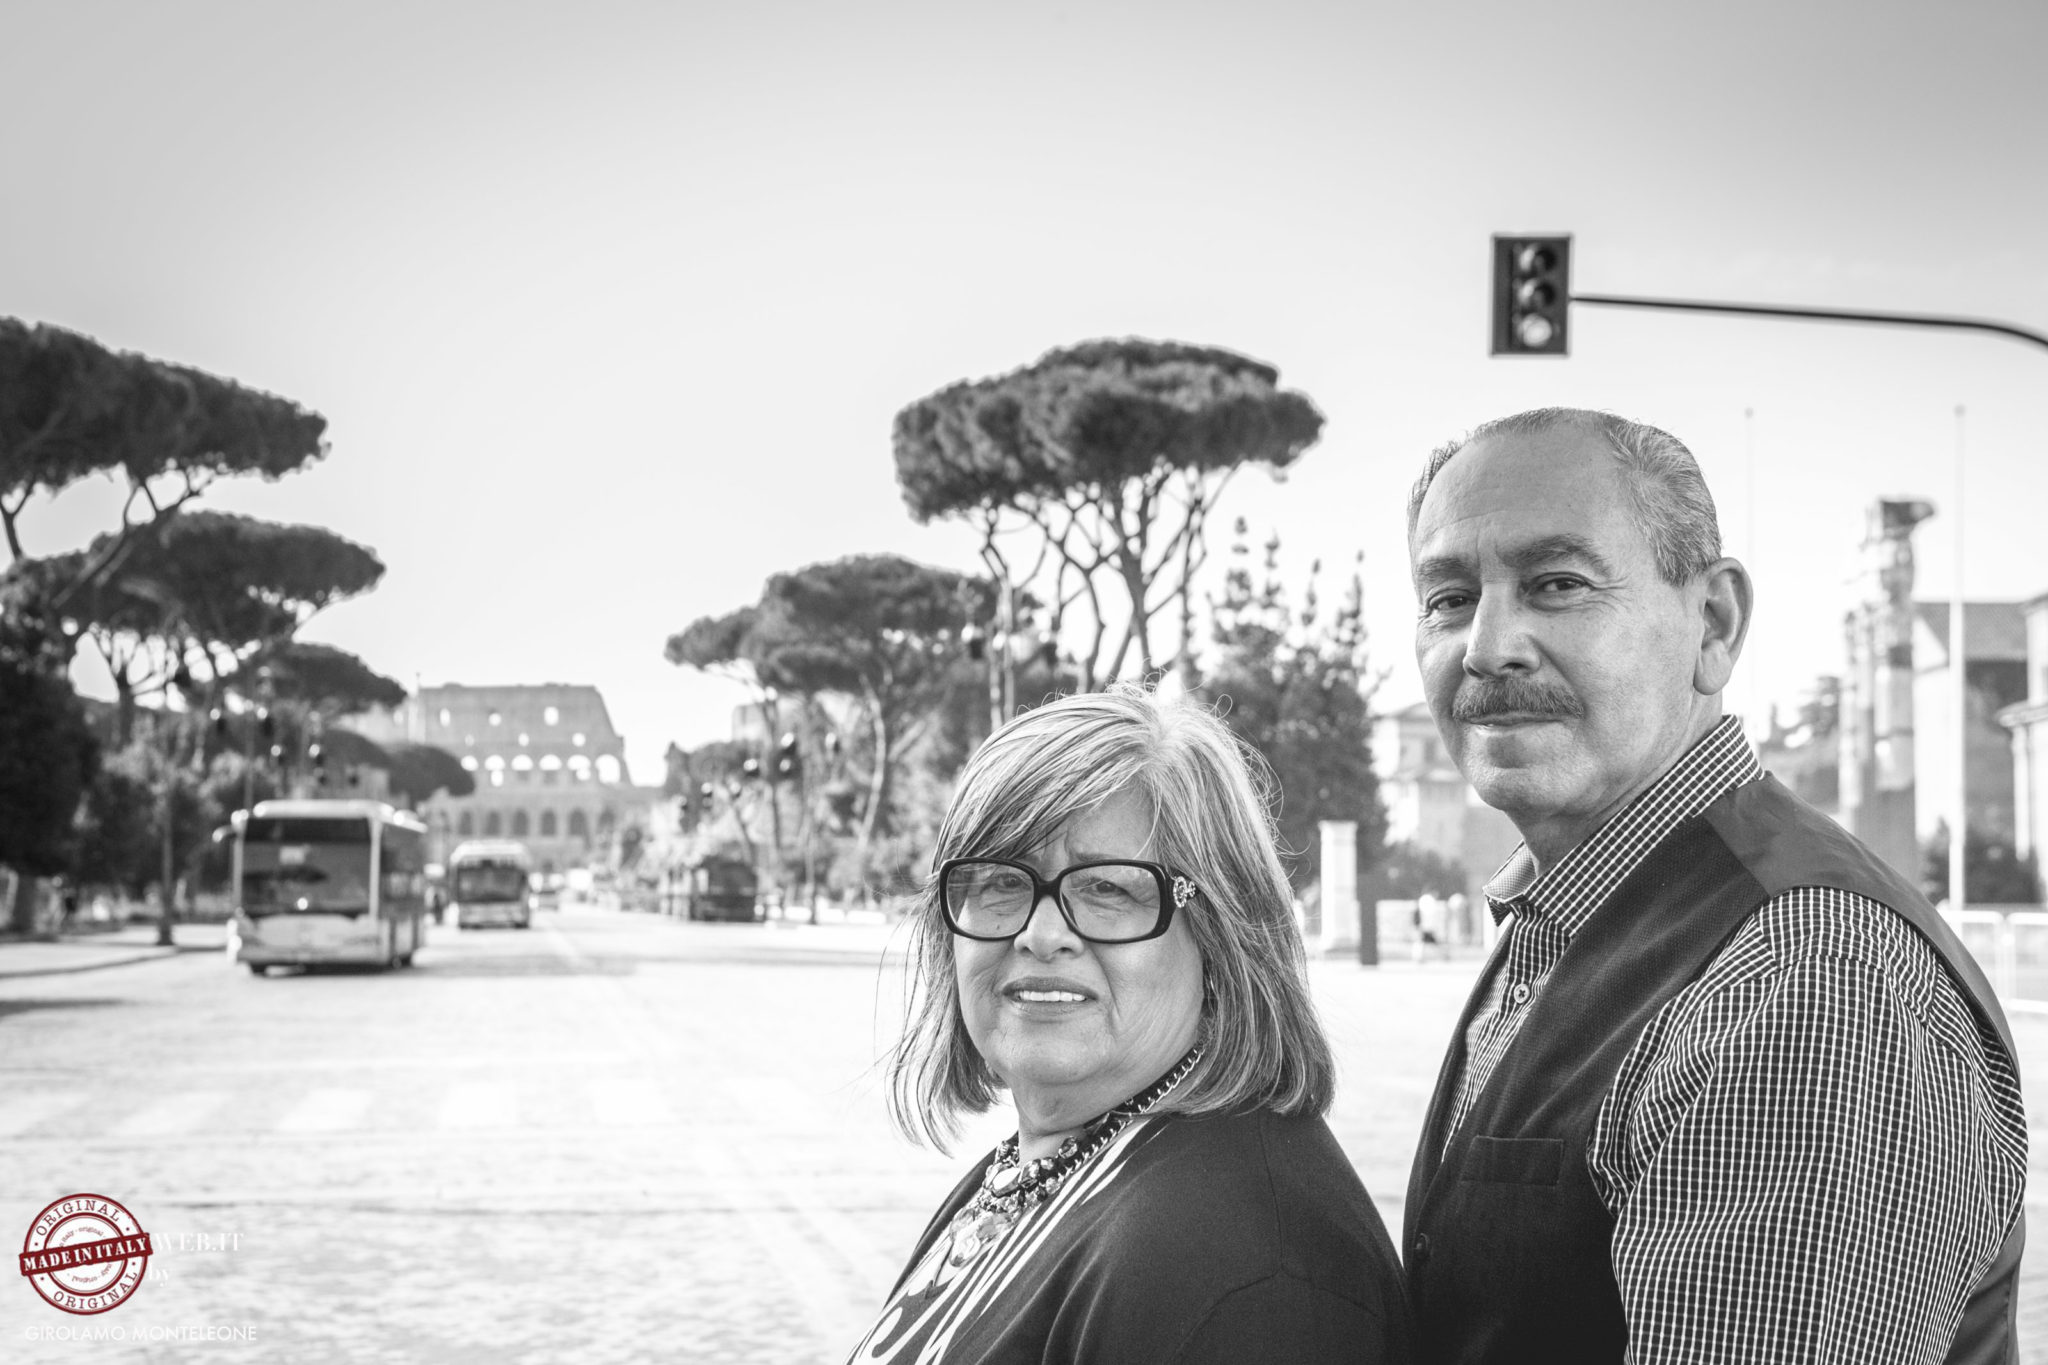 photographer in Rome WWW.MADEINITALYWEB.IT GIROLAMO MONTELEONE Yvette & family in Rome 2016giugno060802173014